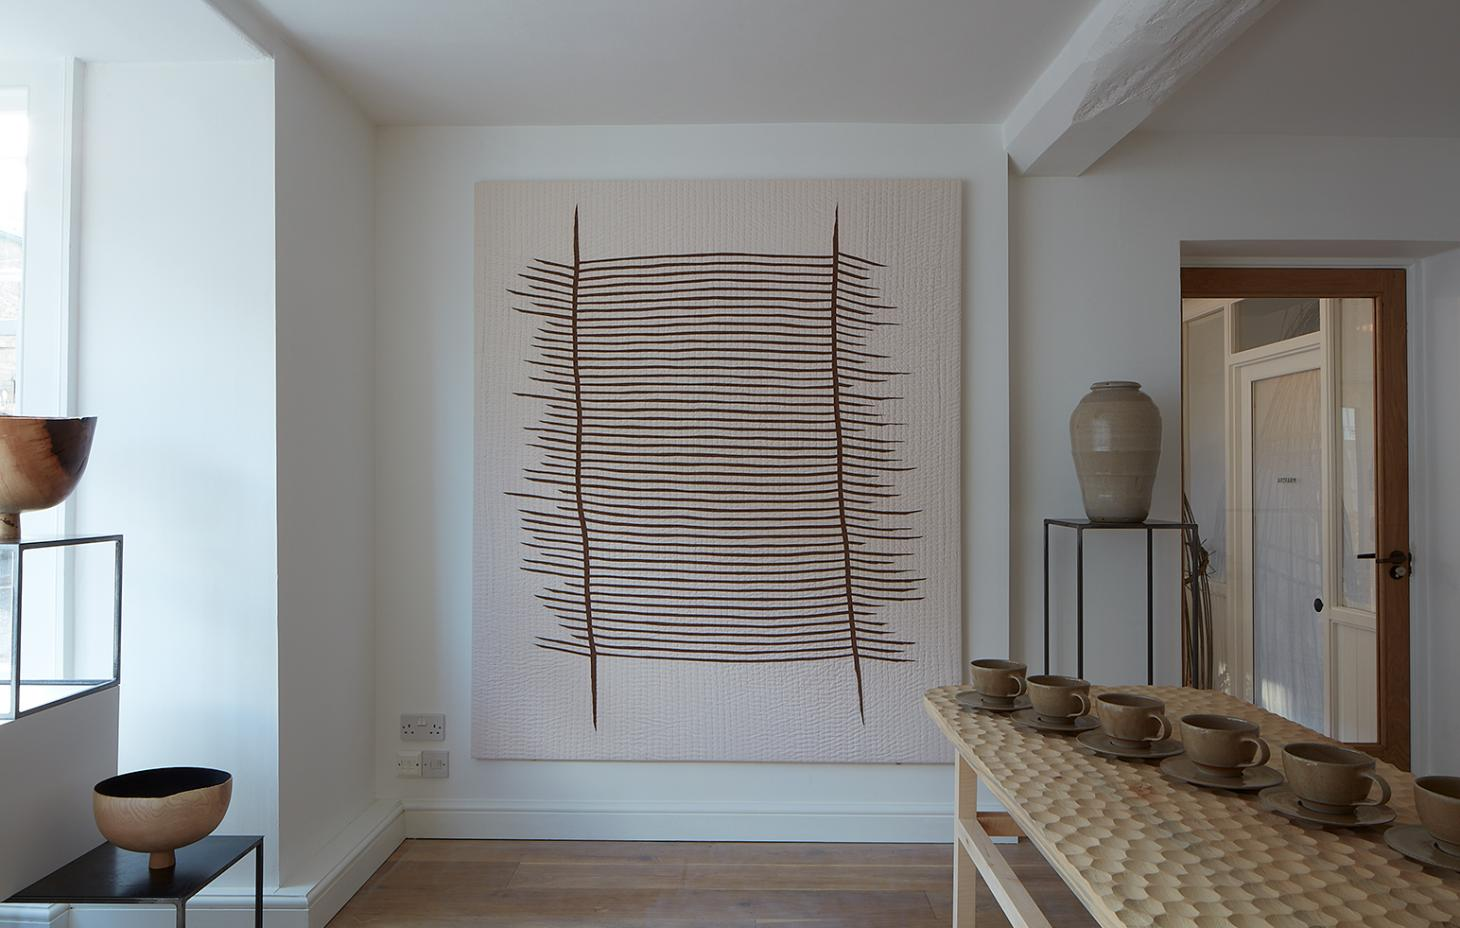 Inside the Make Gallery with Levelling Traditions exhibition of British craft